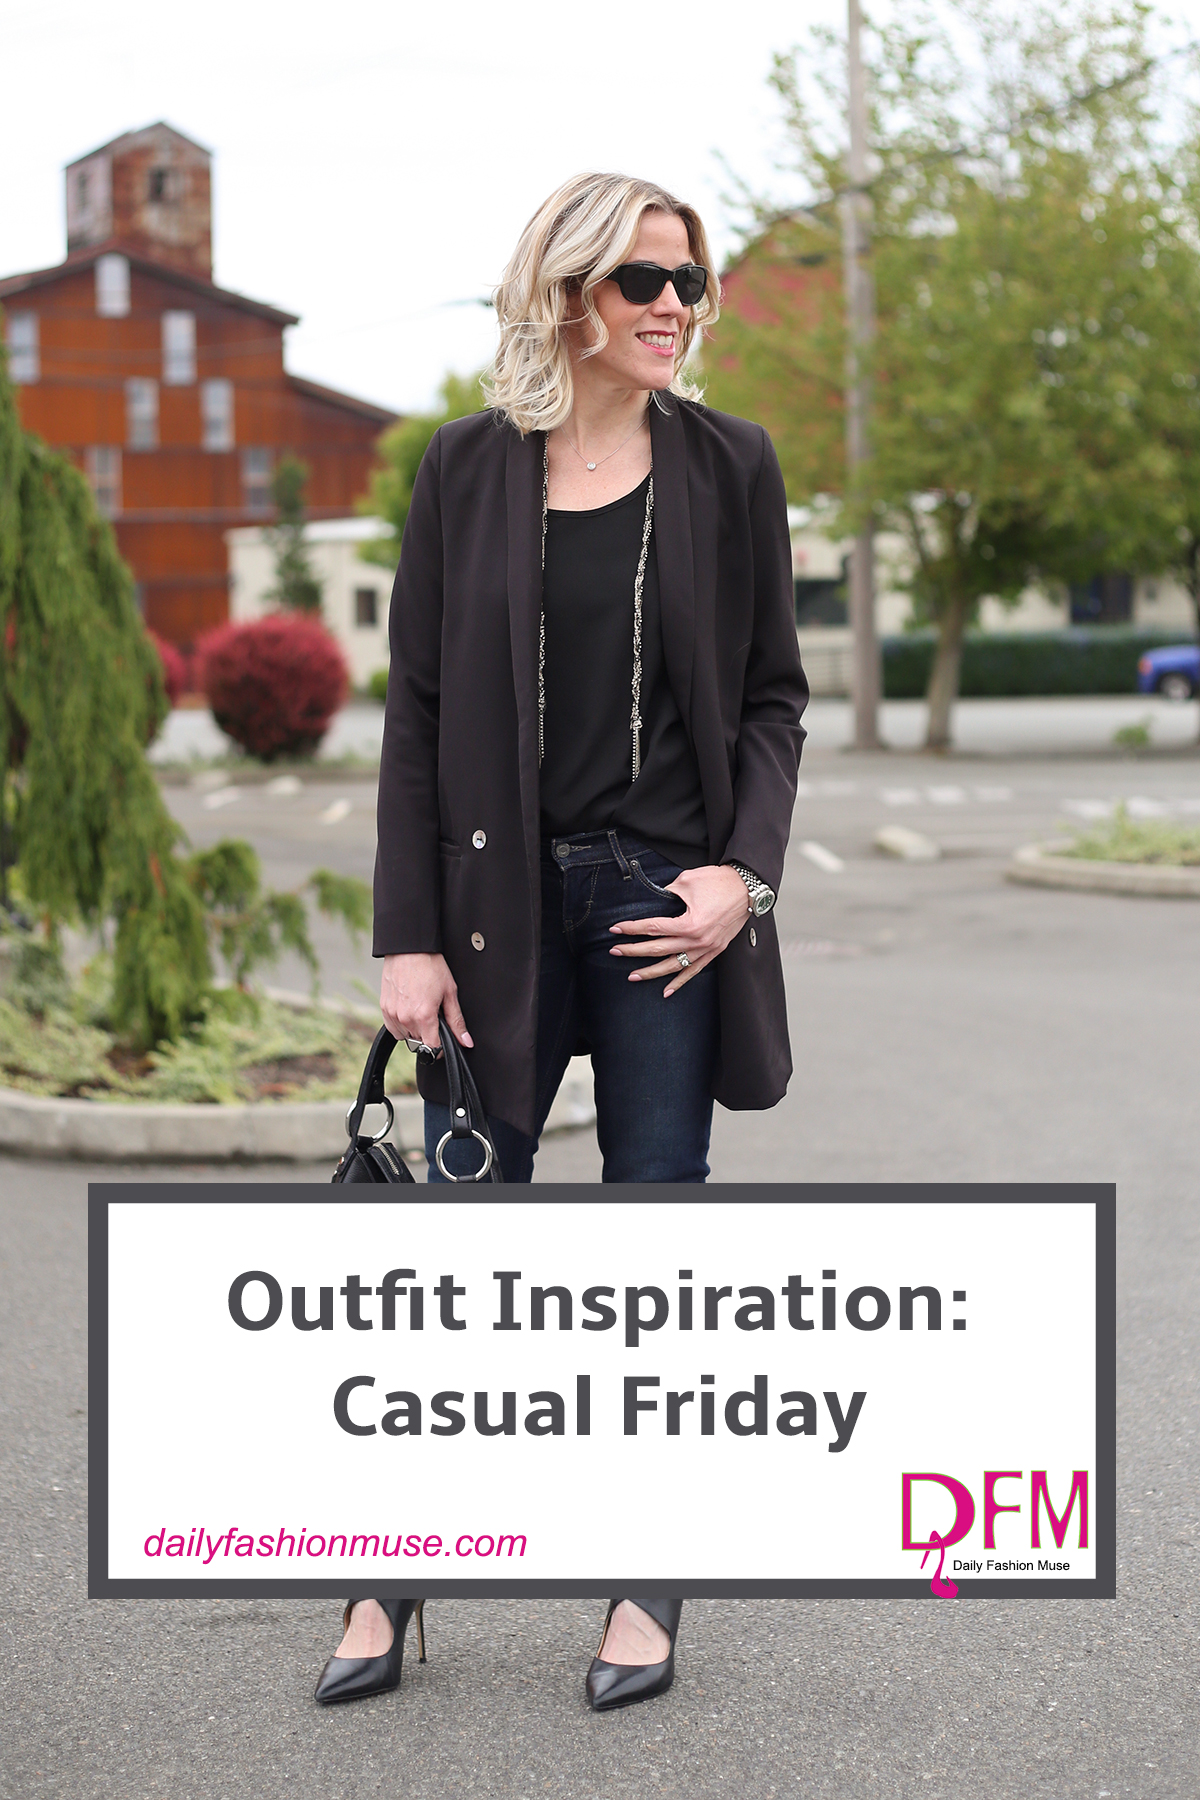 Casual office wear or casual Friday wear doesn't mean sweats and a tee. Generally it is an invitation to sport your jeans. Keep in mind that it is still a professional environment and a blazer with jeans is the perfect compromise.